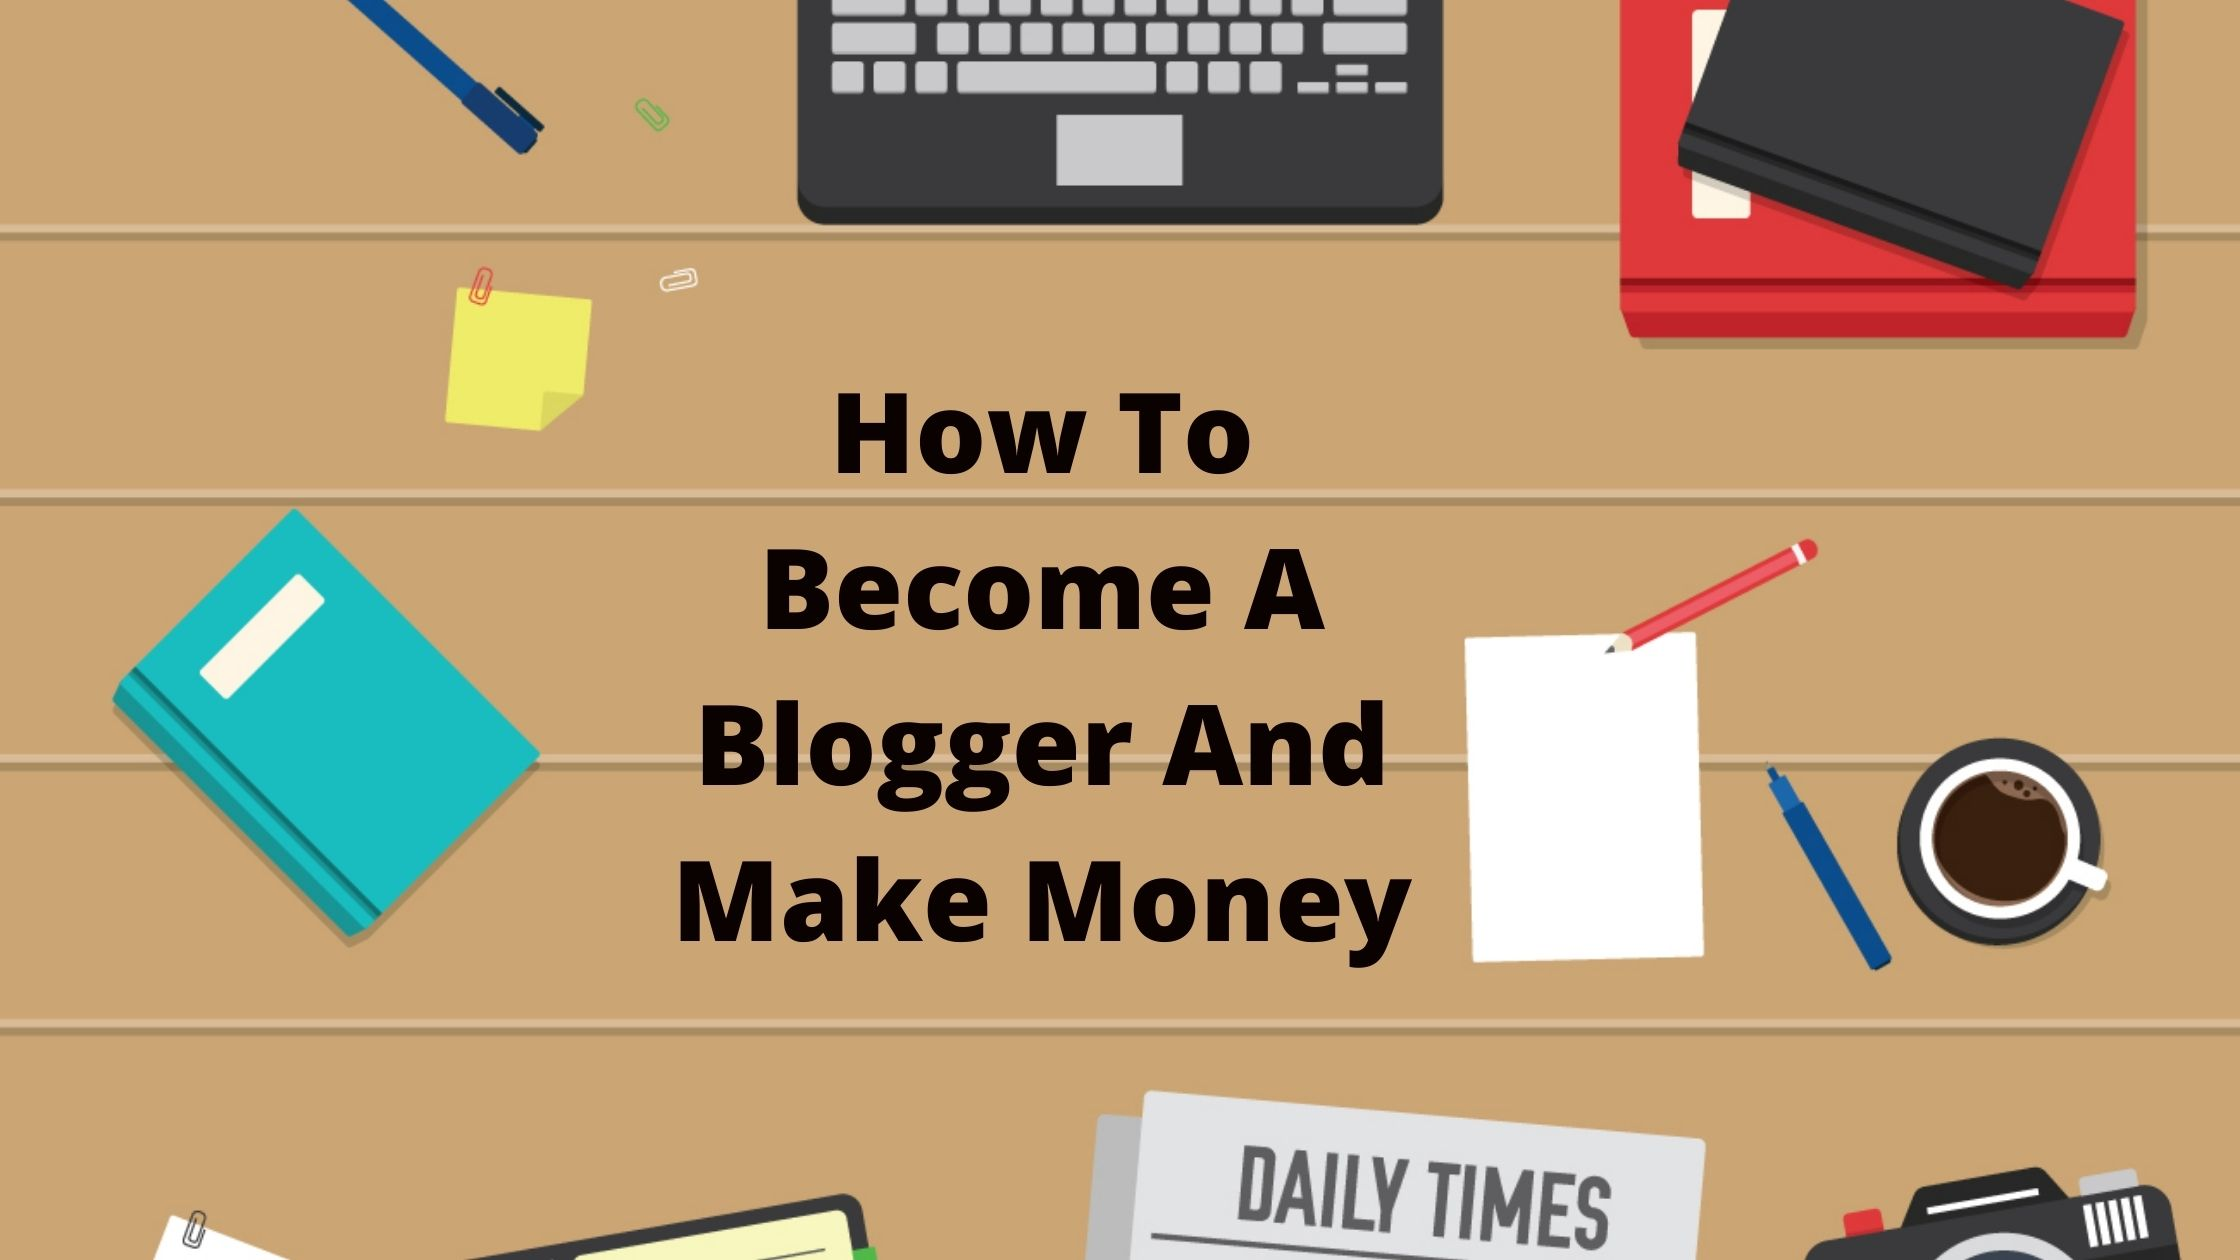 How To Become A Blogger And Make Money